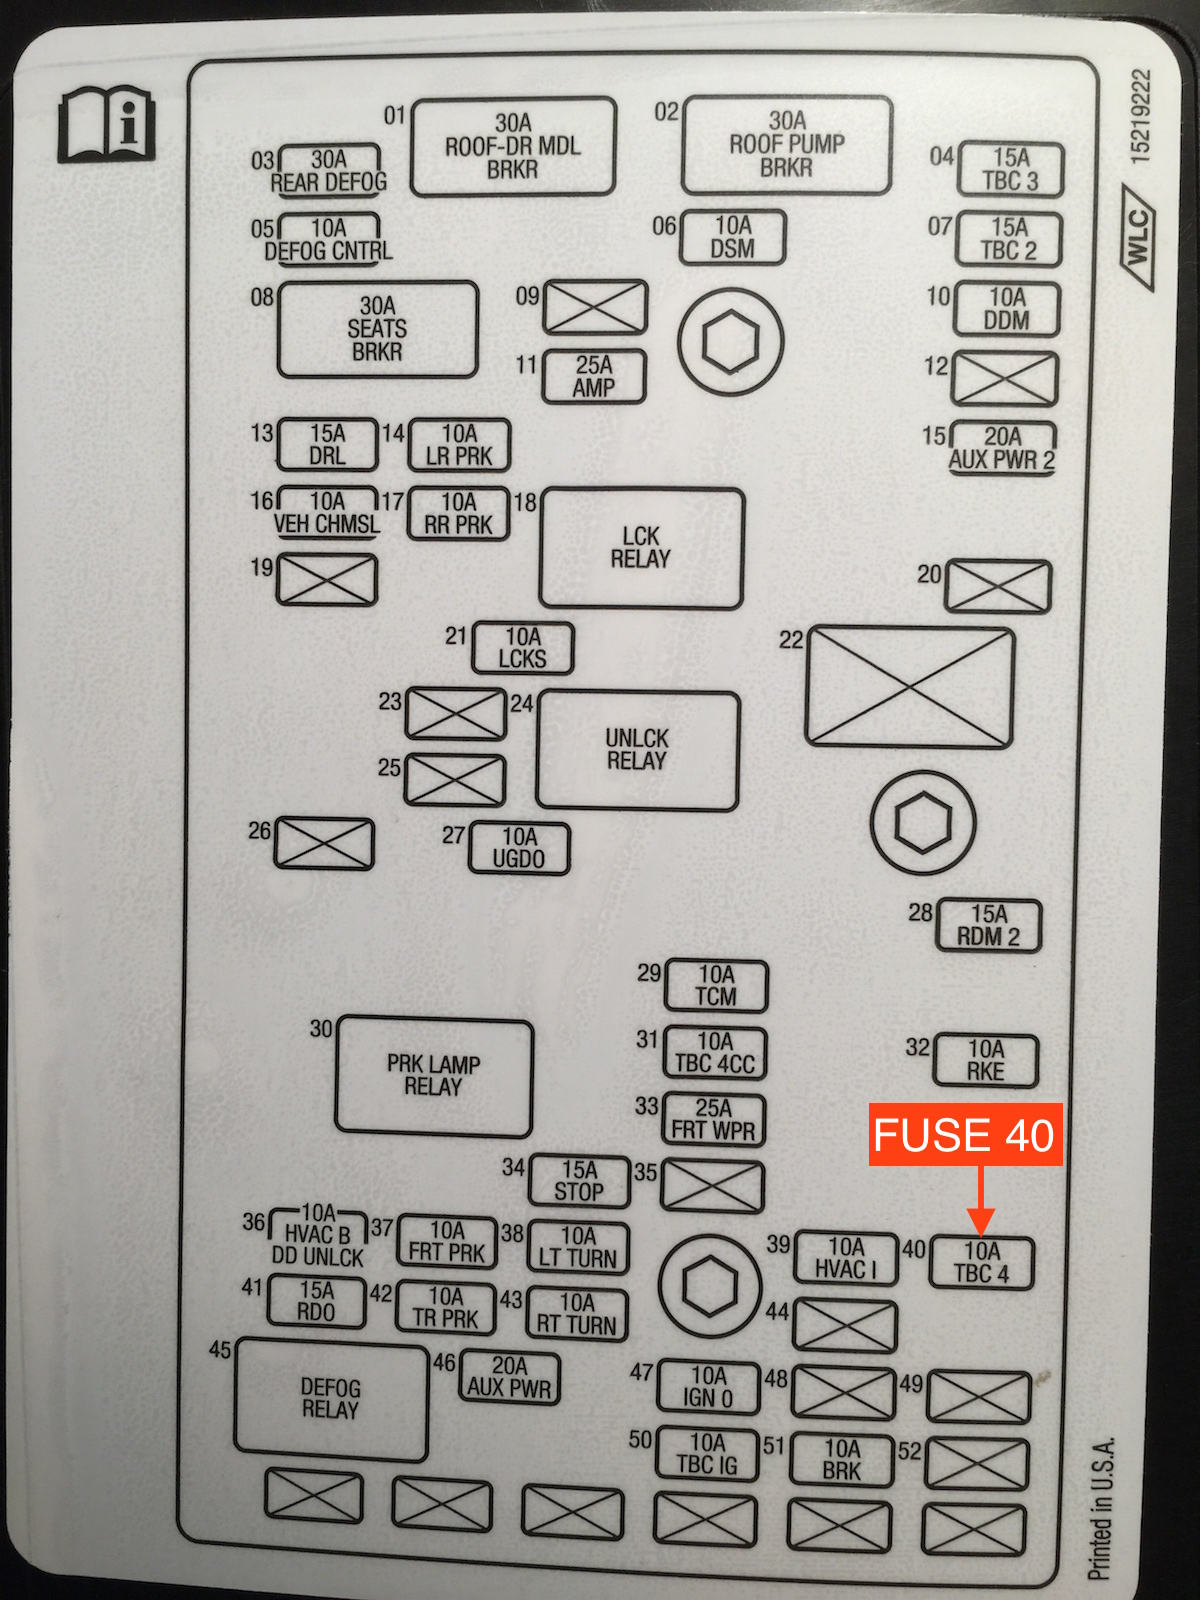 260994d1437873905 cargo cover light disaster img_2200 copy wiring diagram 2005 chevy ssr cargo wiring diagram